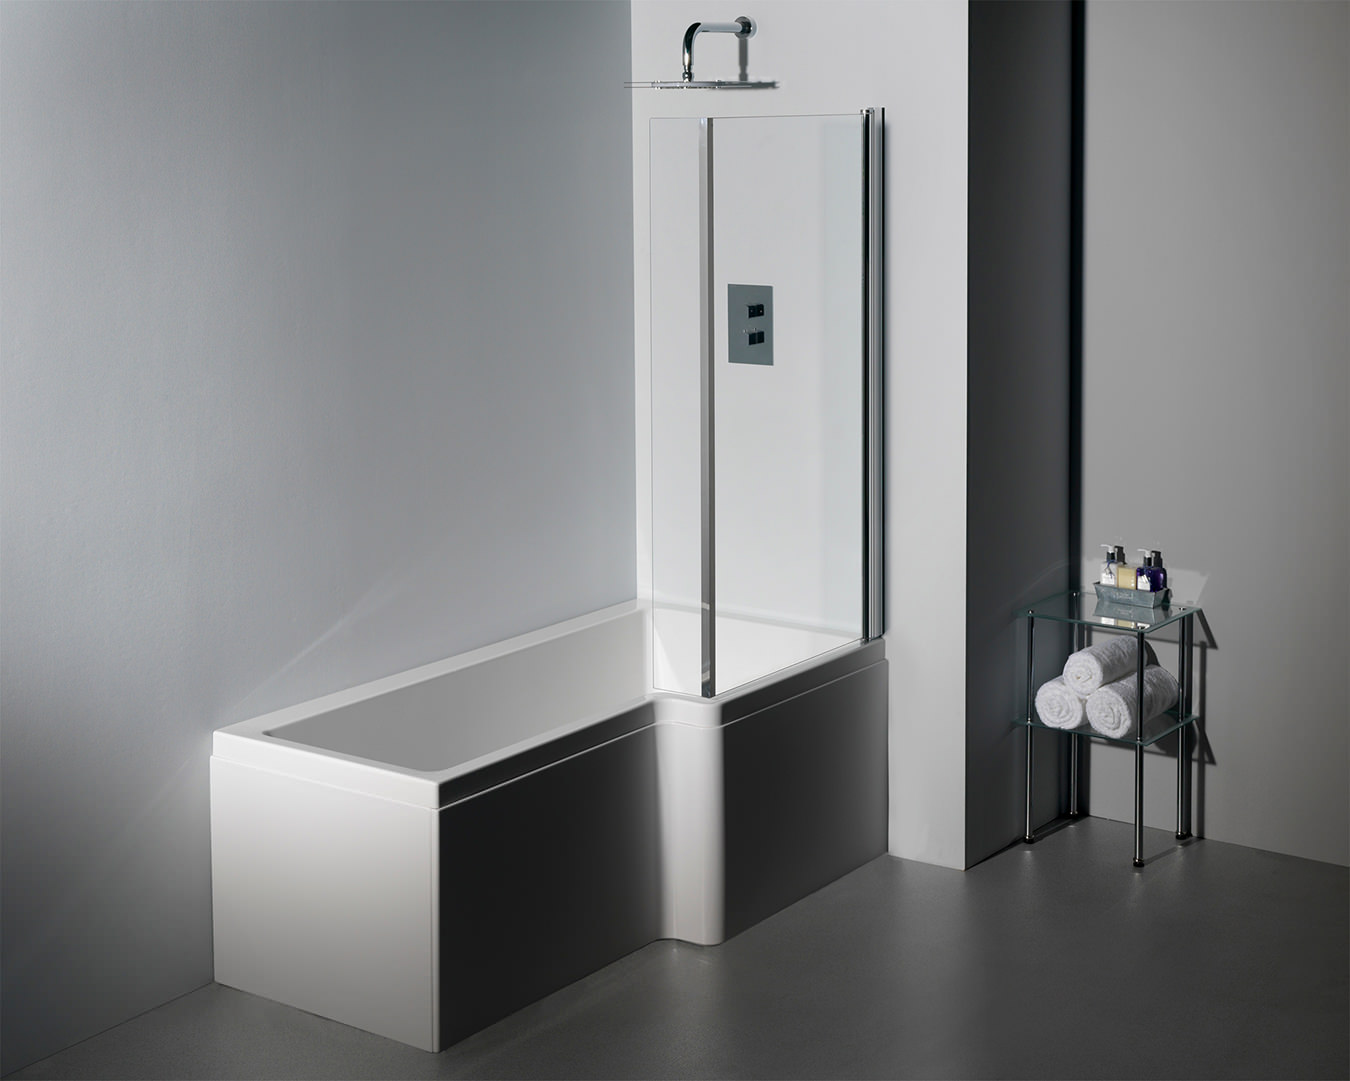 carron quantum square shower bath 1700 x 850mm q4 02207 additional image of carron quantum square shower bath 1700 x 850mm